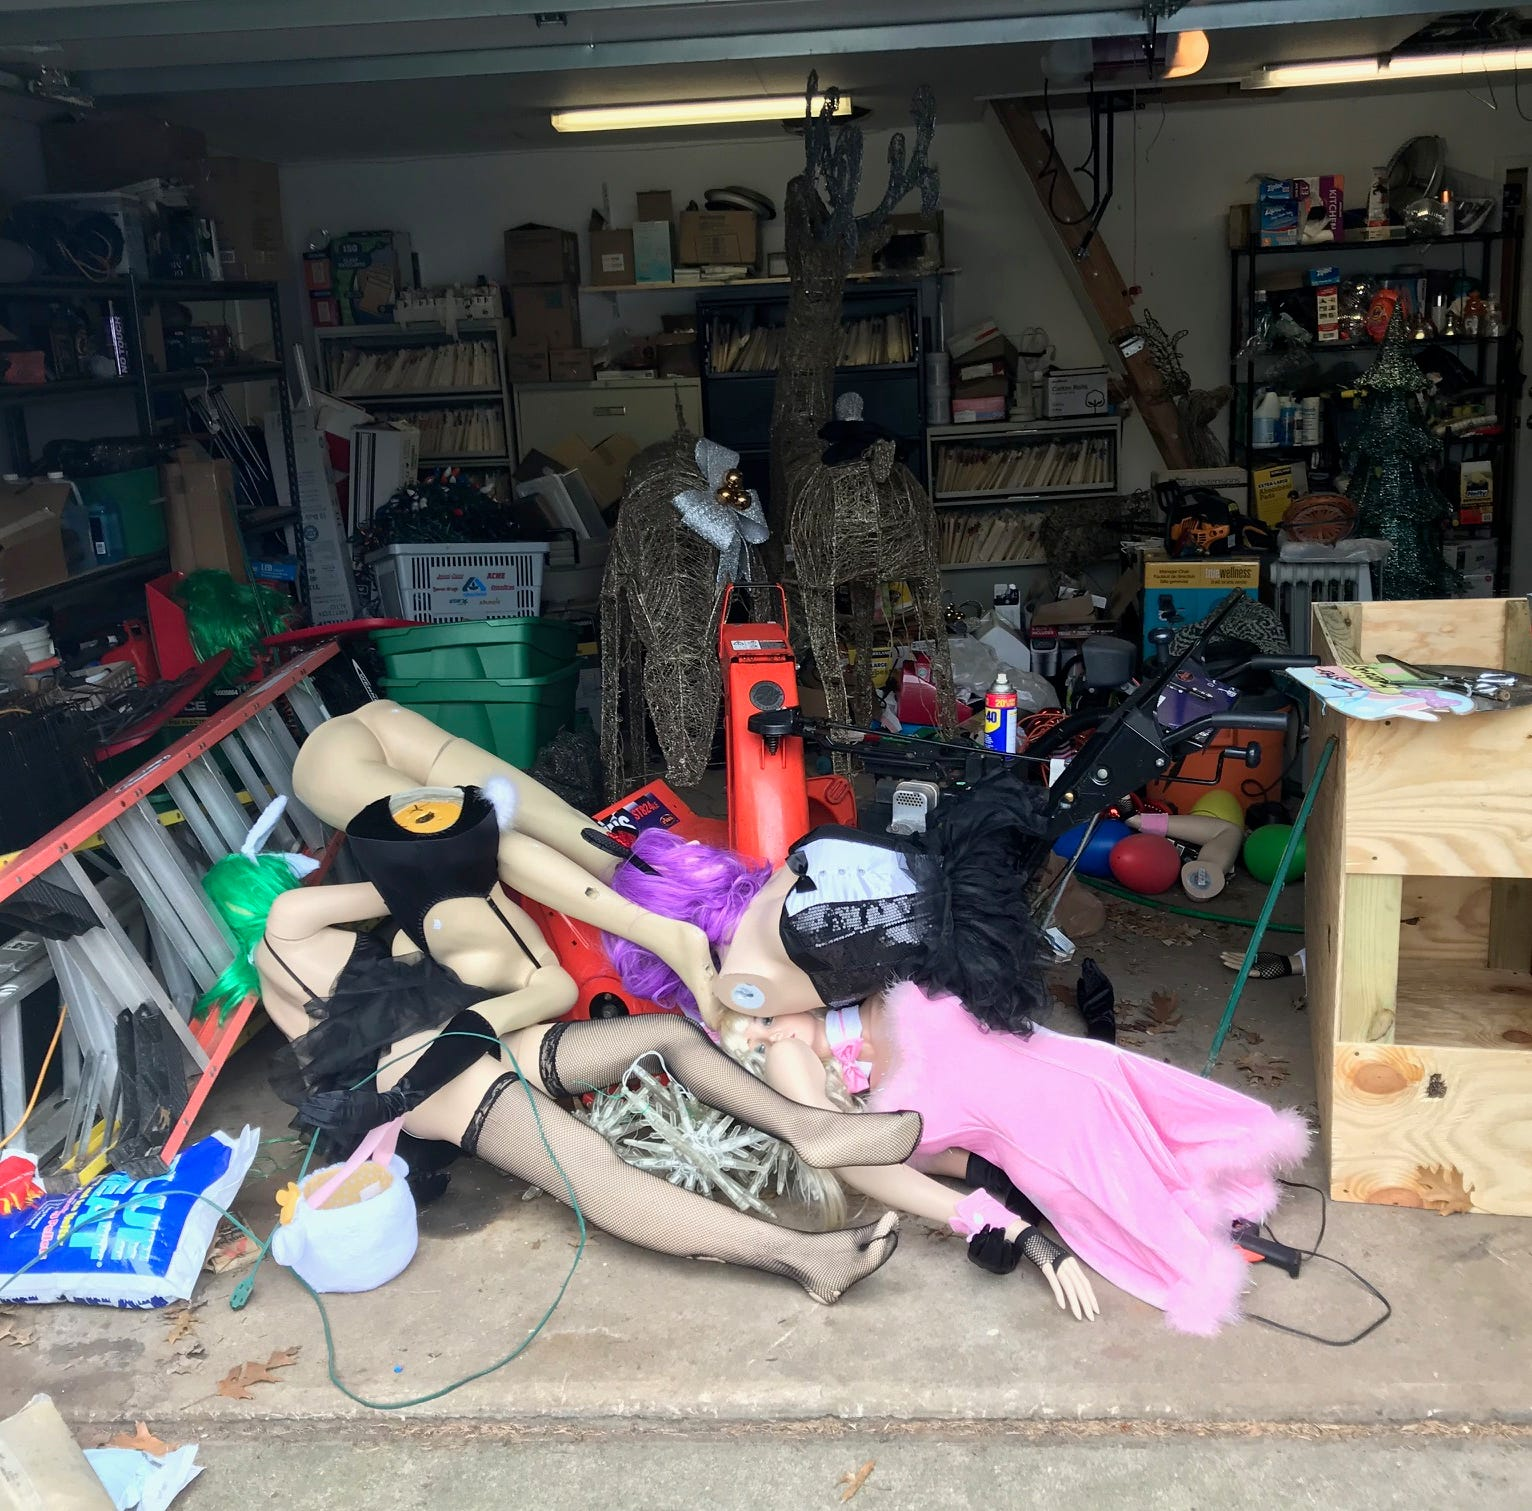 Woman, unhappy with sexy Easter mannequins, takes down display with garden shears